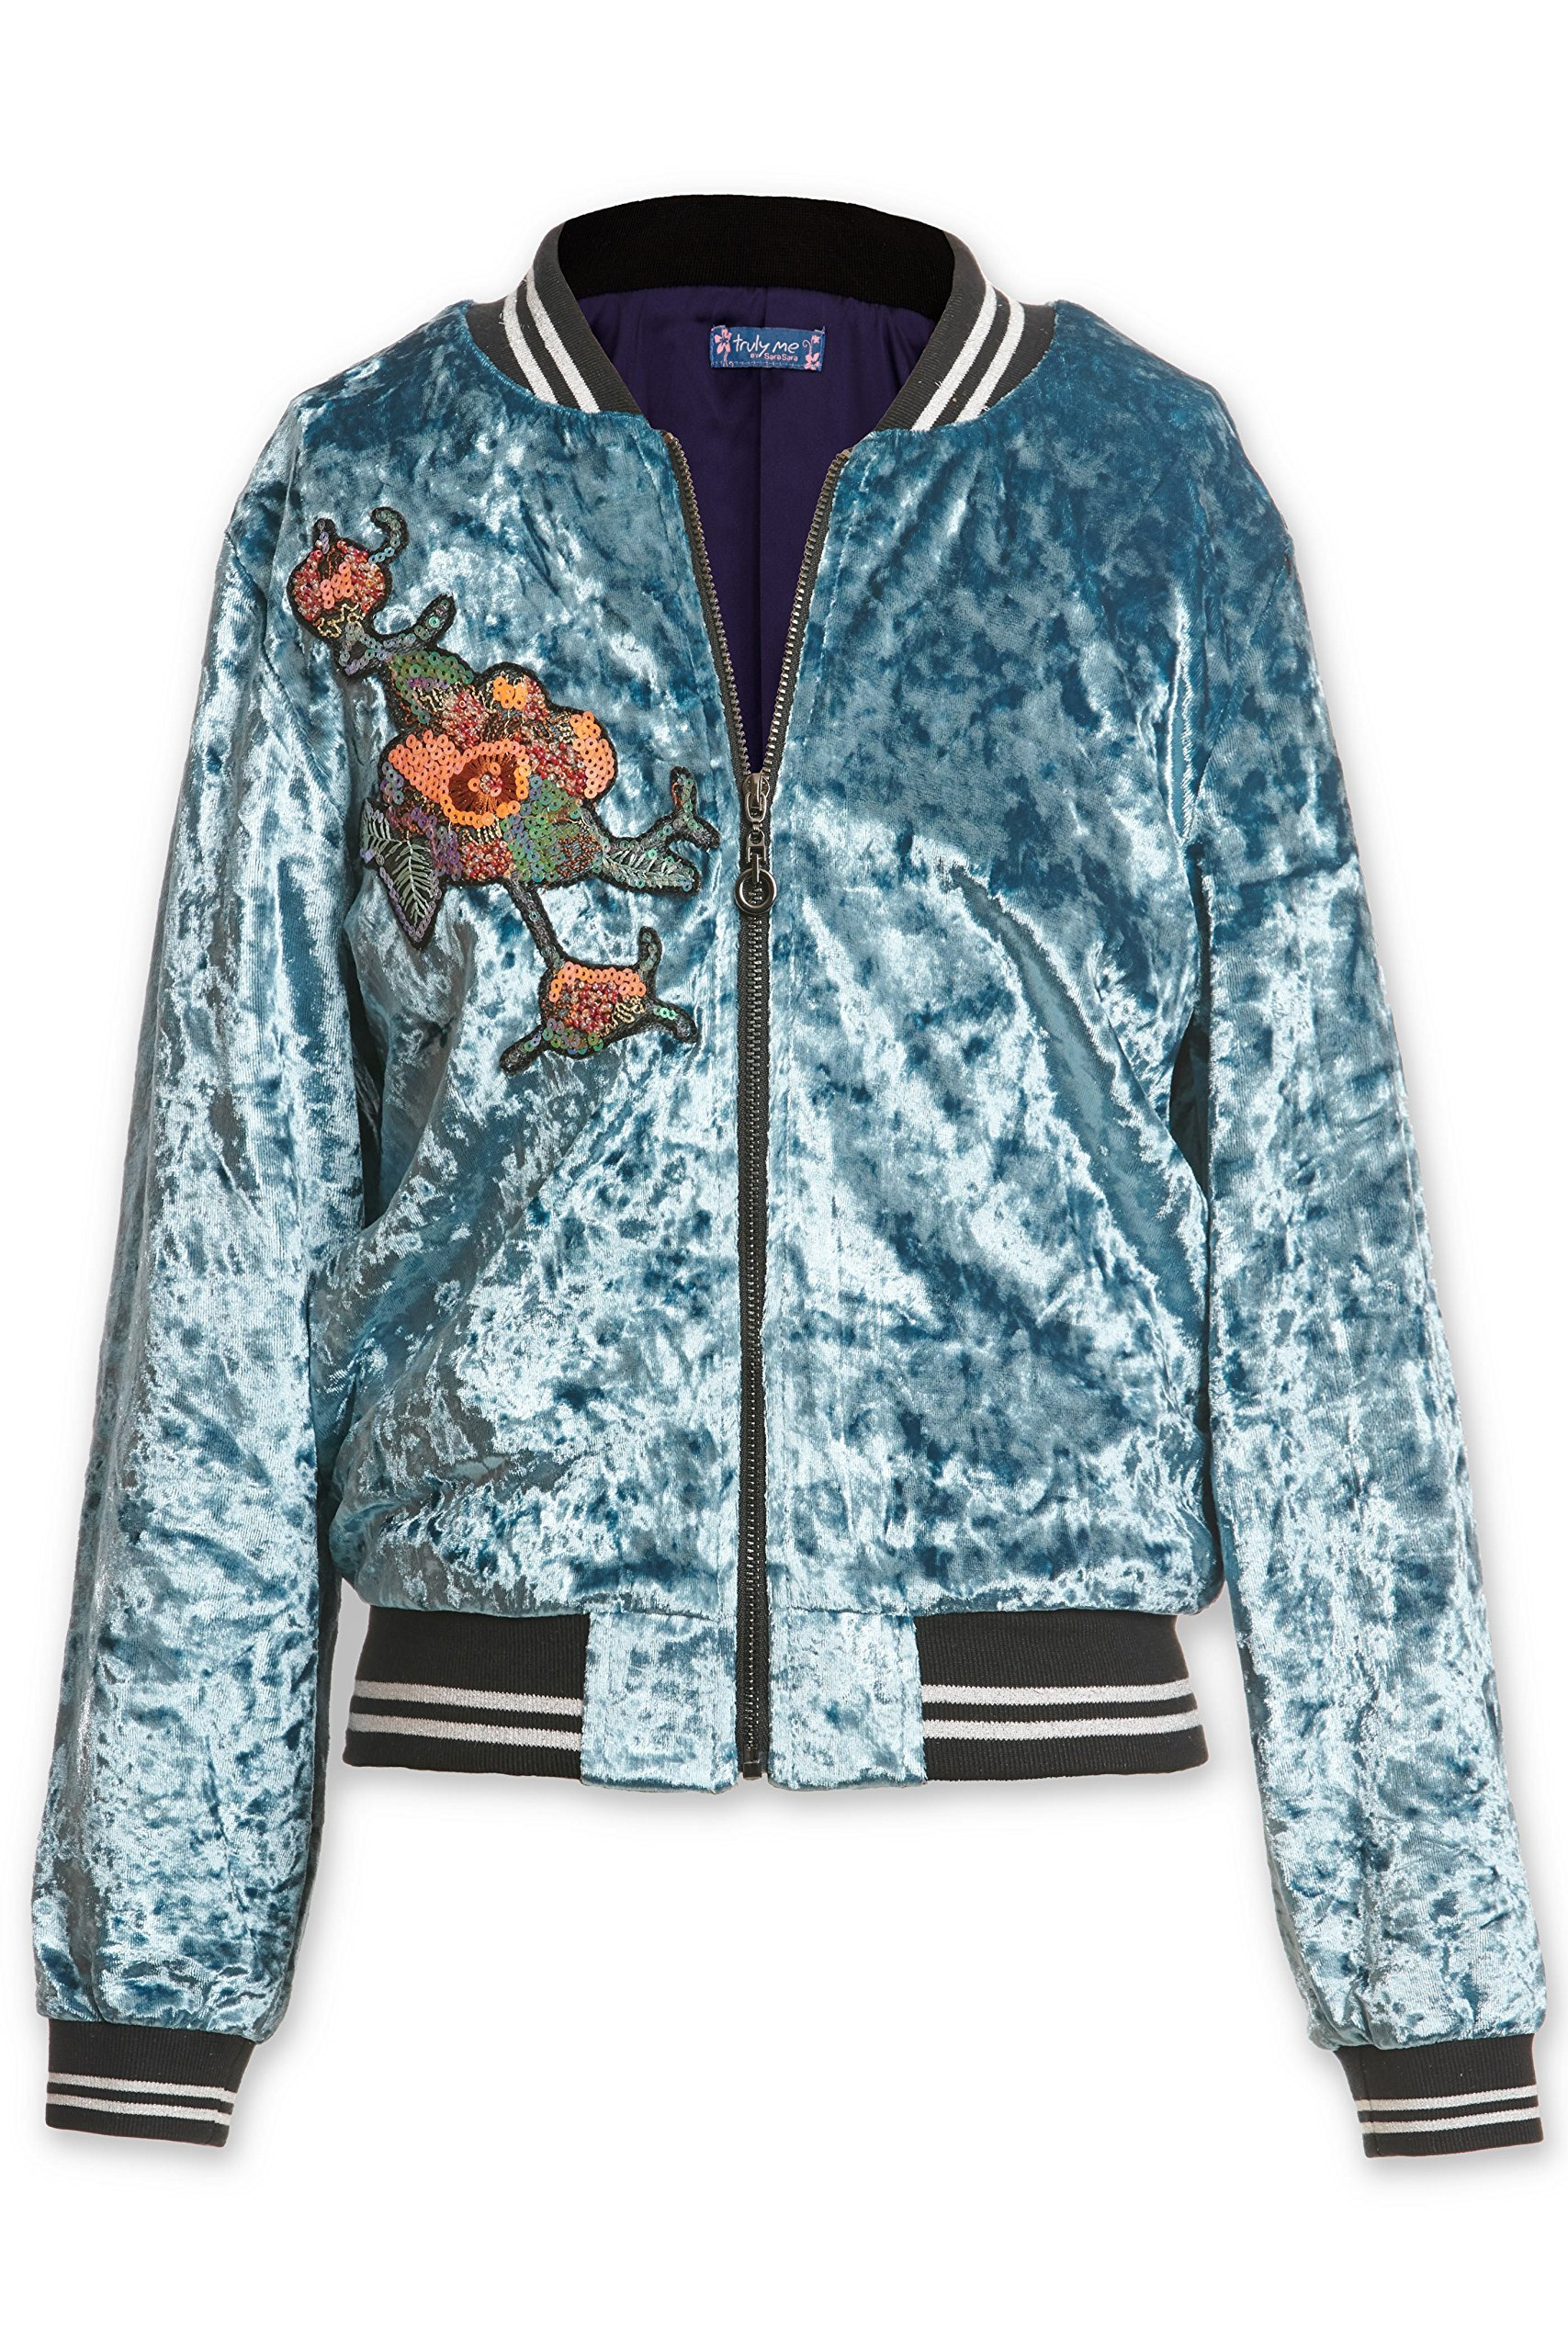 Truly Me, Big Girls Outerwear Jackets, Cardigans, Sweaters (Many Options), 7-16 (Small-8, Teal) by Truly Me